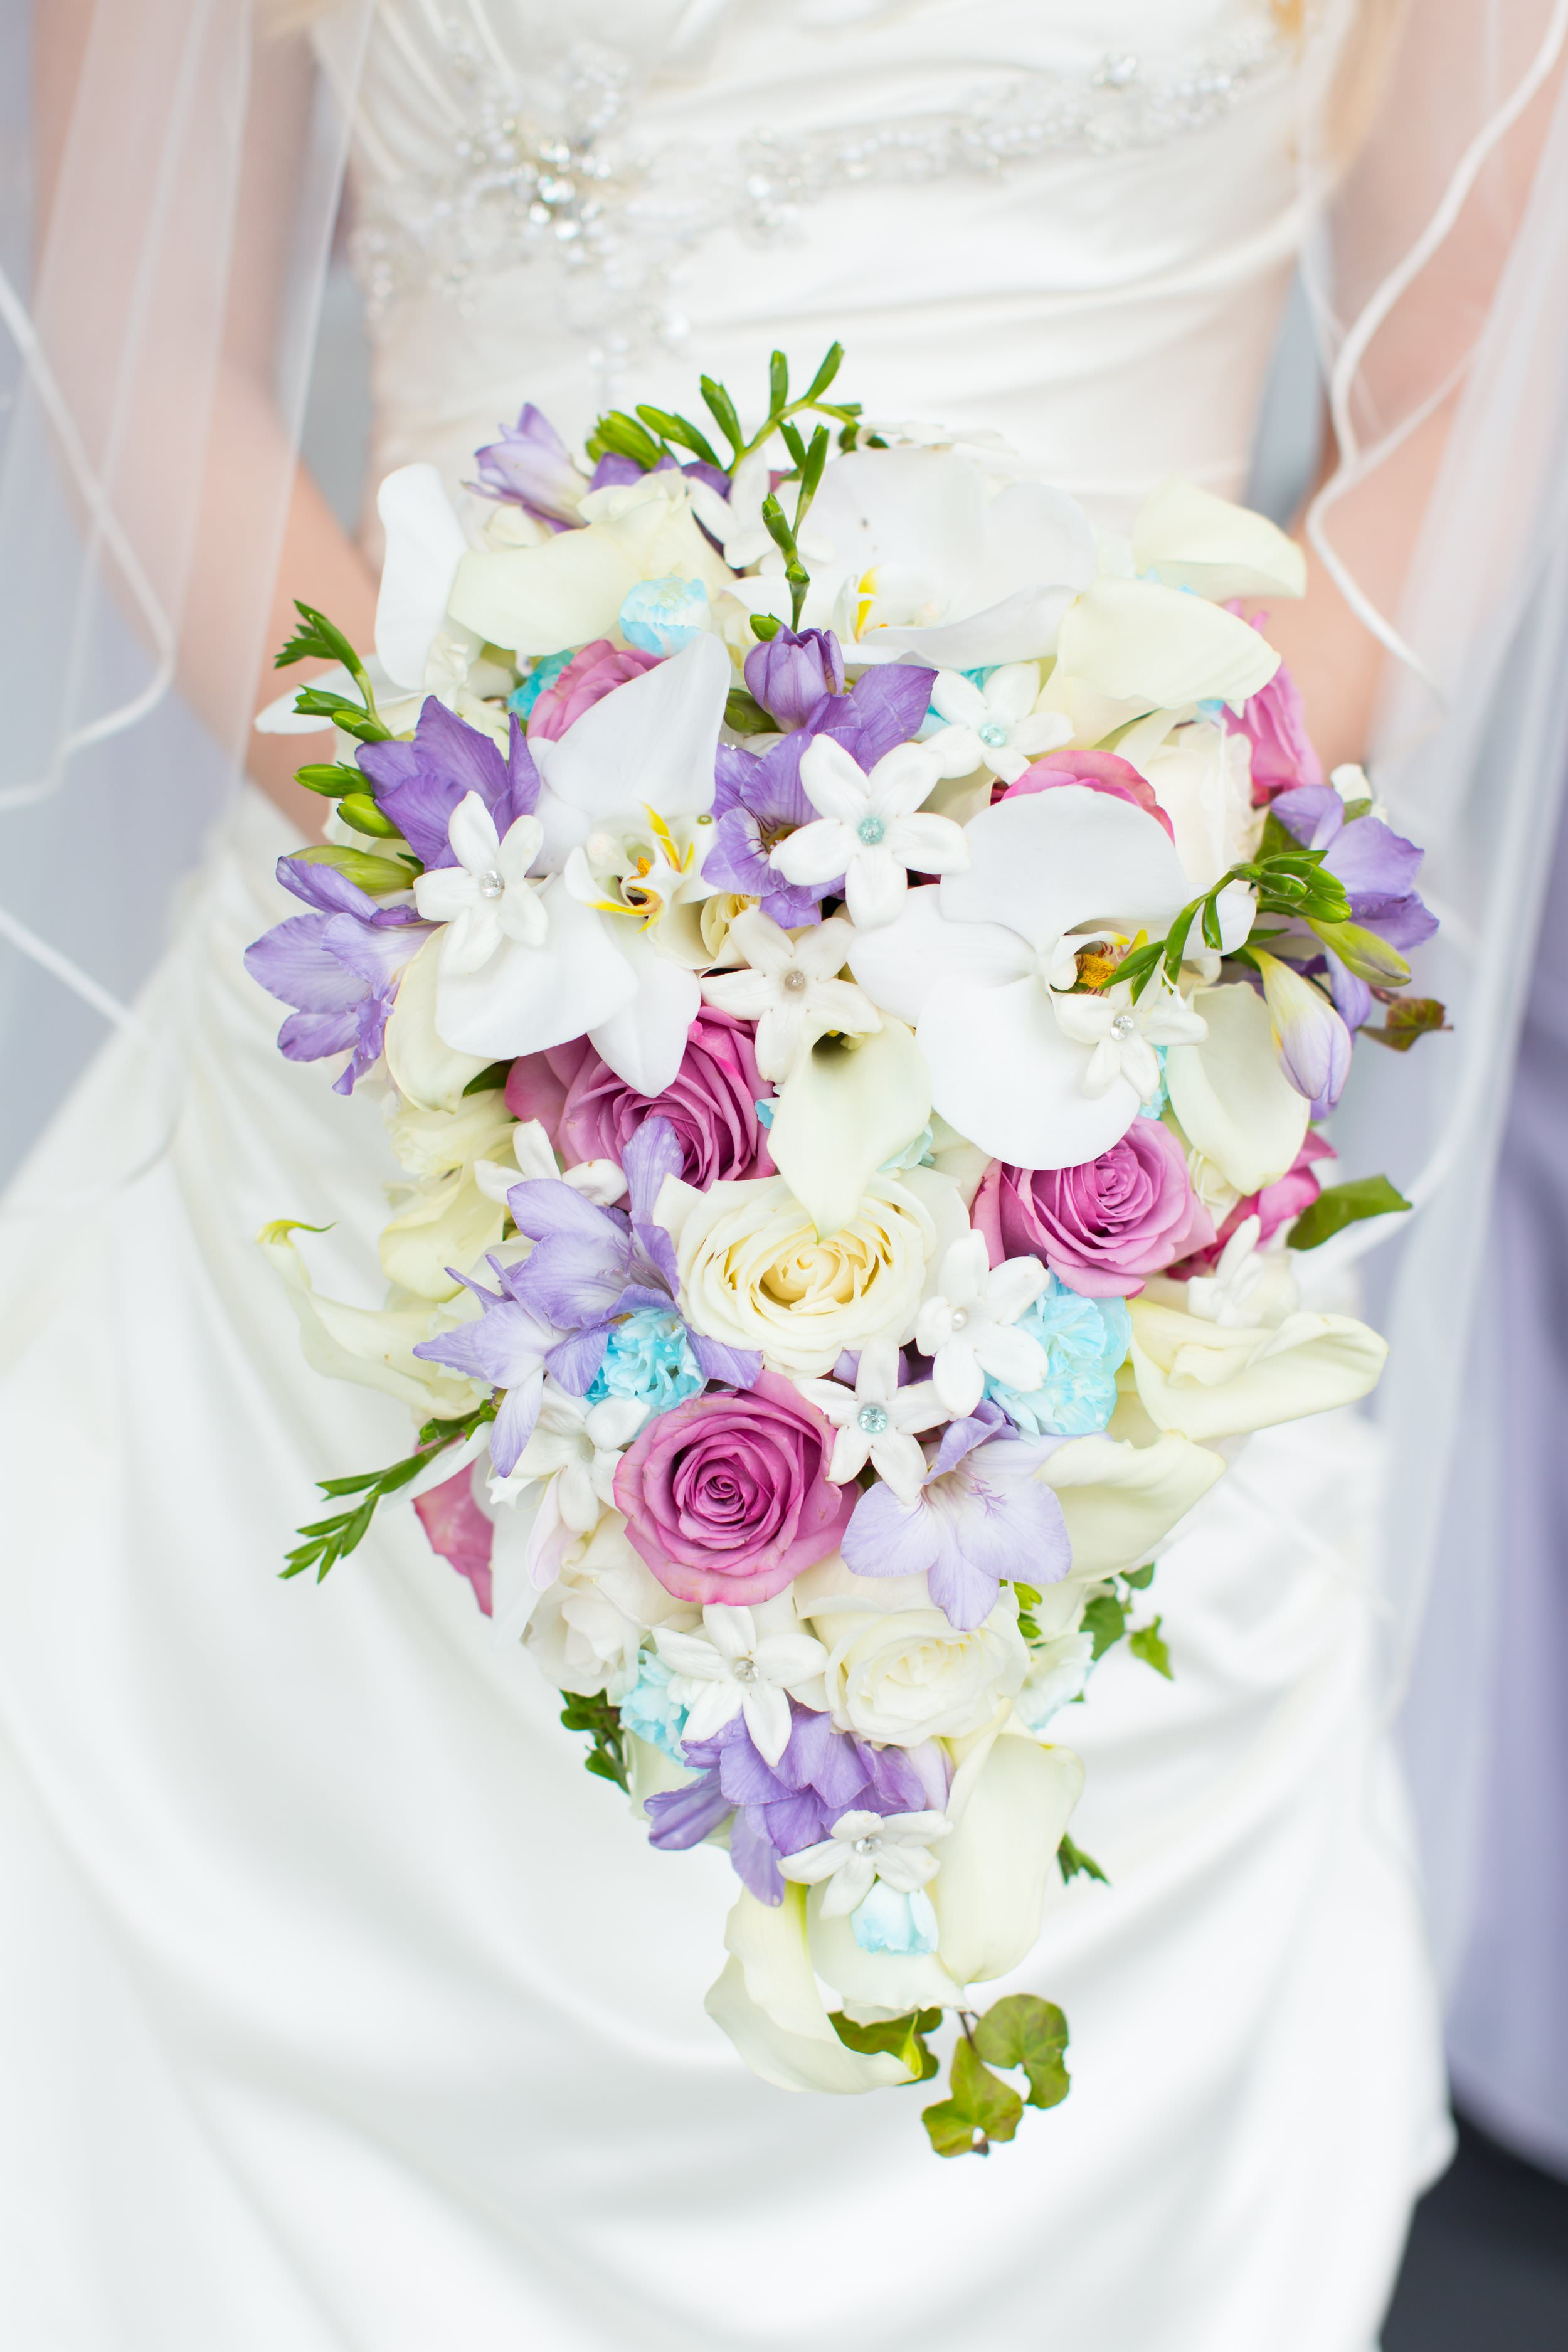 Amber's classic cascading bouquet by  Sharpsburg florist Bedazzled Flower Shop  was designed to mimic the style of the bouquet her mother carried when she got married. To view more from Joseph and Amber's  Something Special wedding in Newnan, click here .